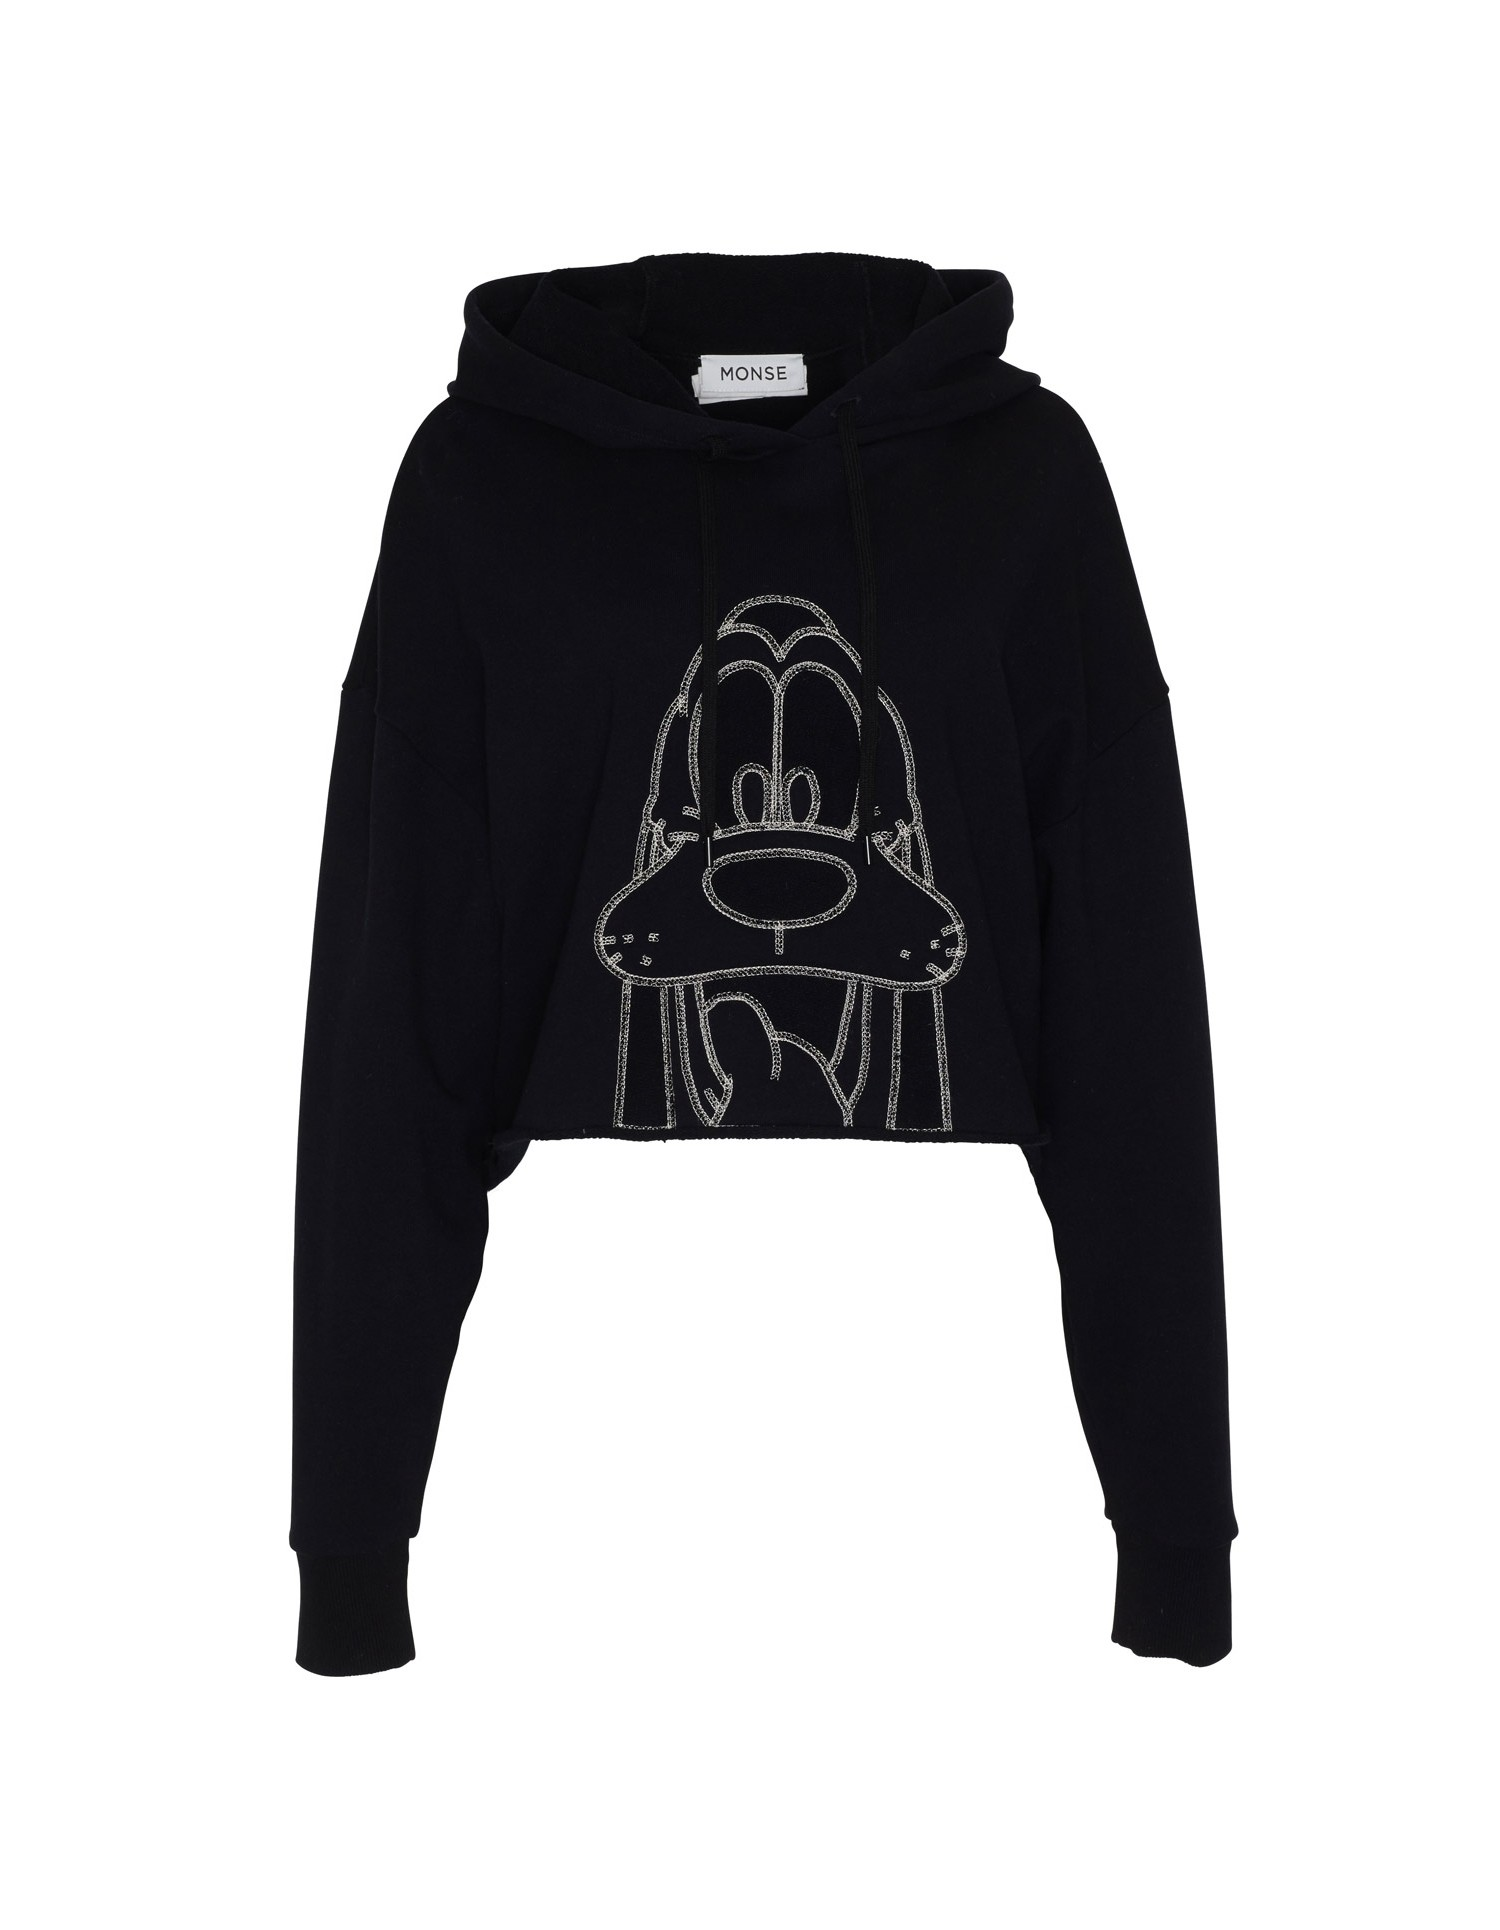 MONSE Pluto Cropped Hoodie in Black on Model Full Front